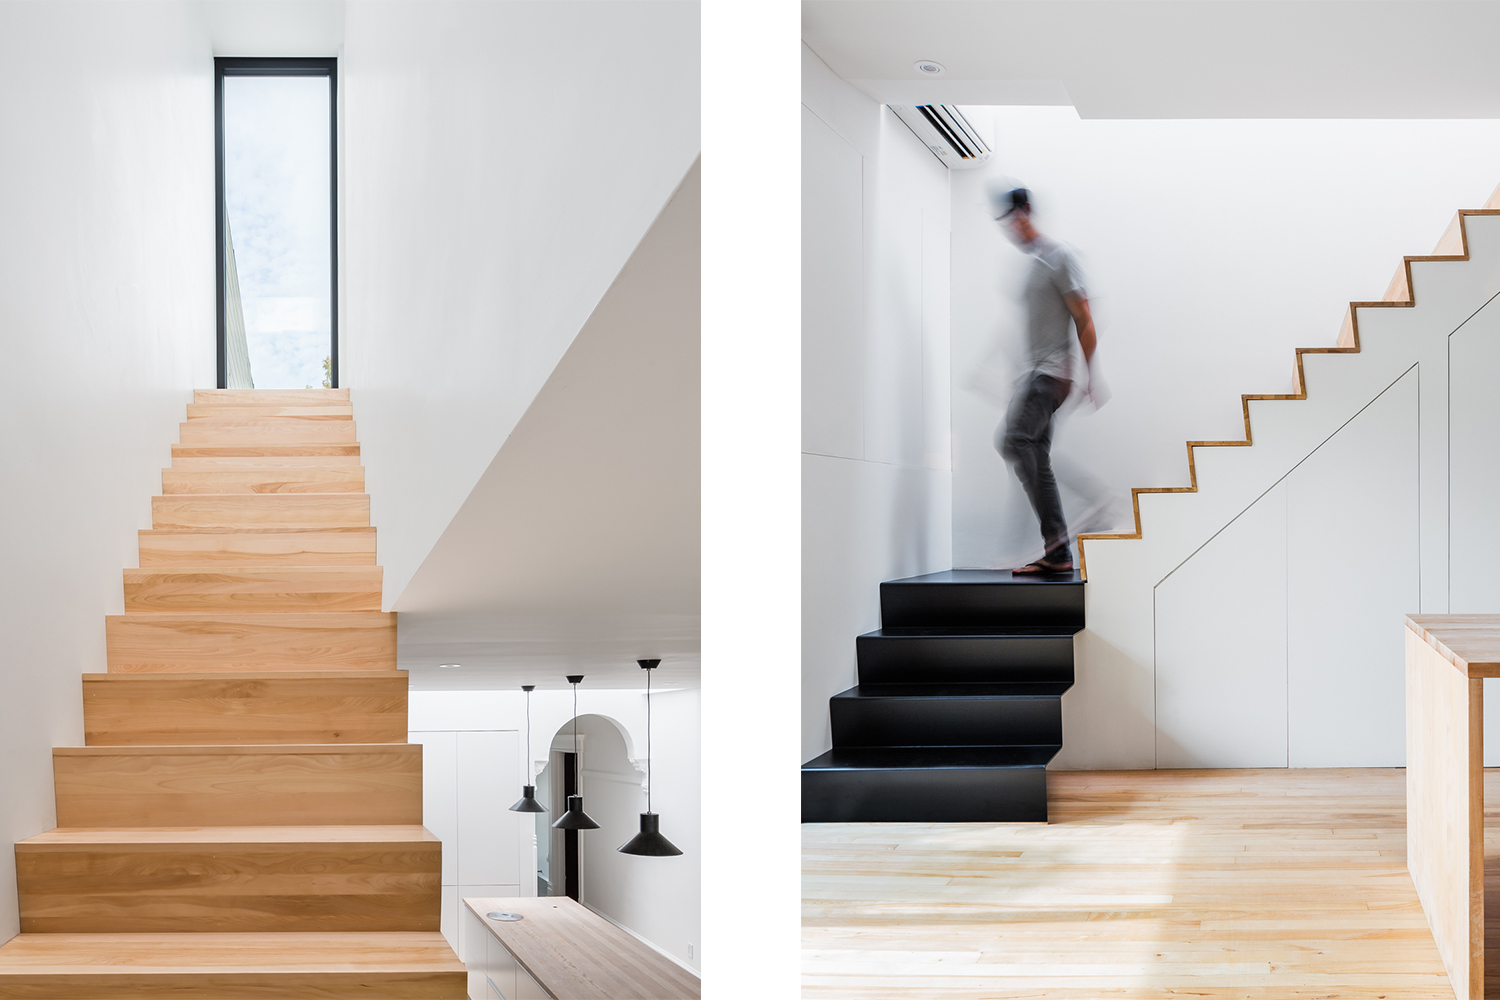 New staircase, a section with steps and risers in wood: cherry. And the other section of 4 steps made in black metal folding. A large window aligned with the staircase